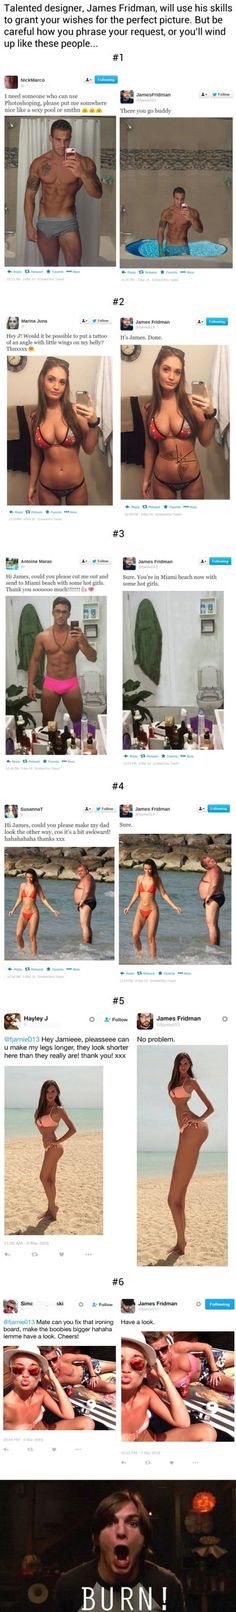 Graphic designer trolls people who ask for their pics to be Photoshopped in the best way